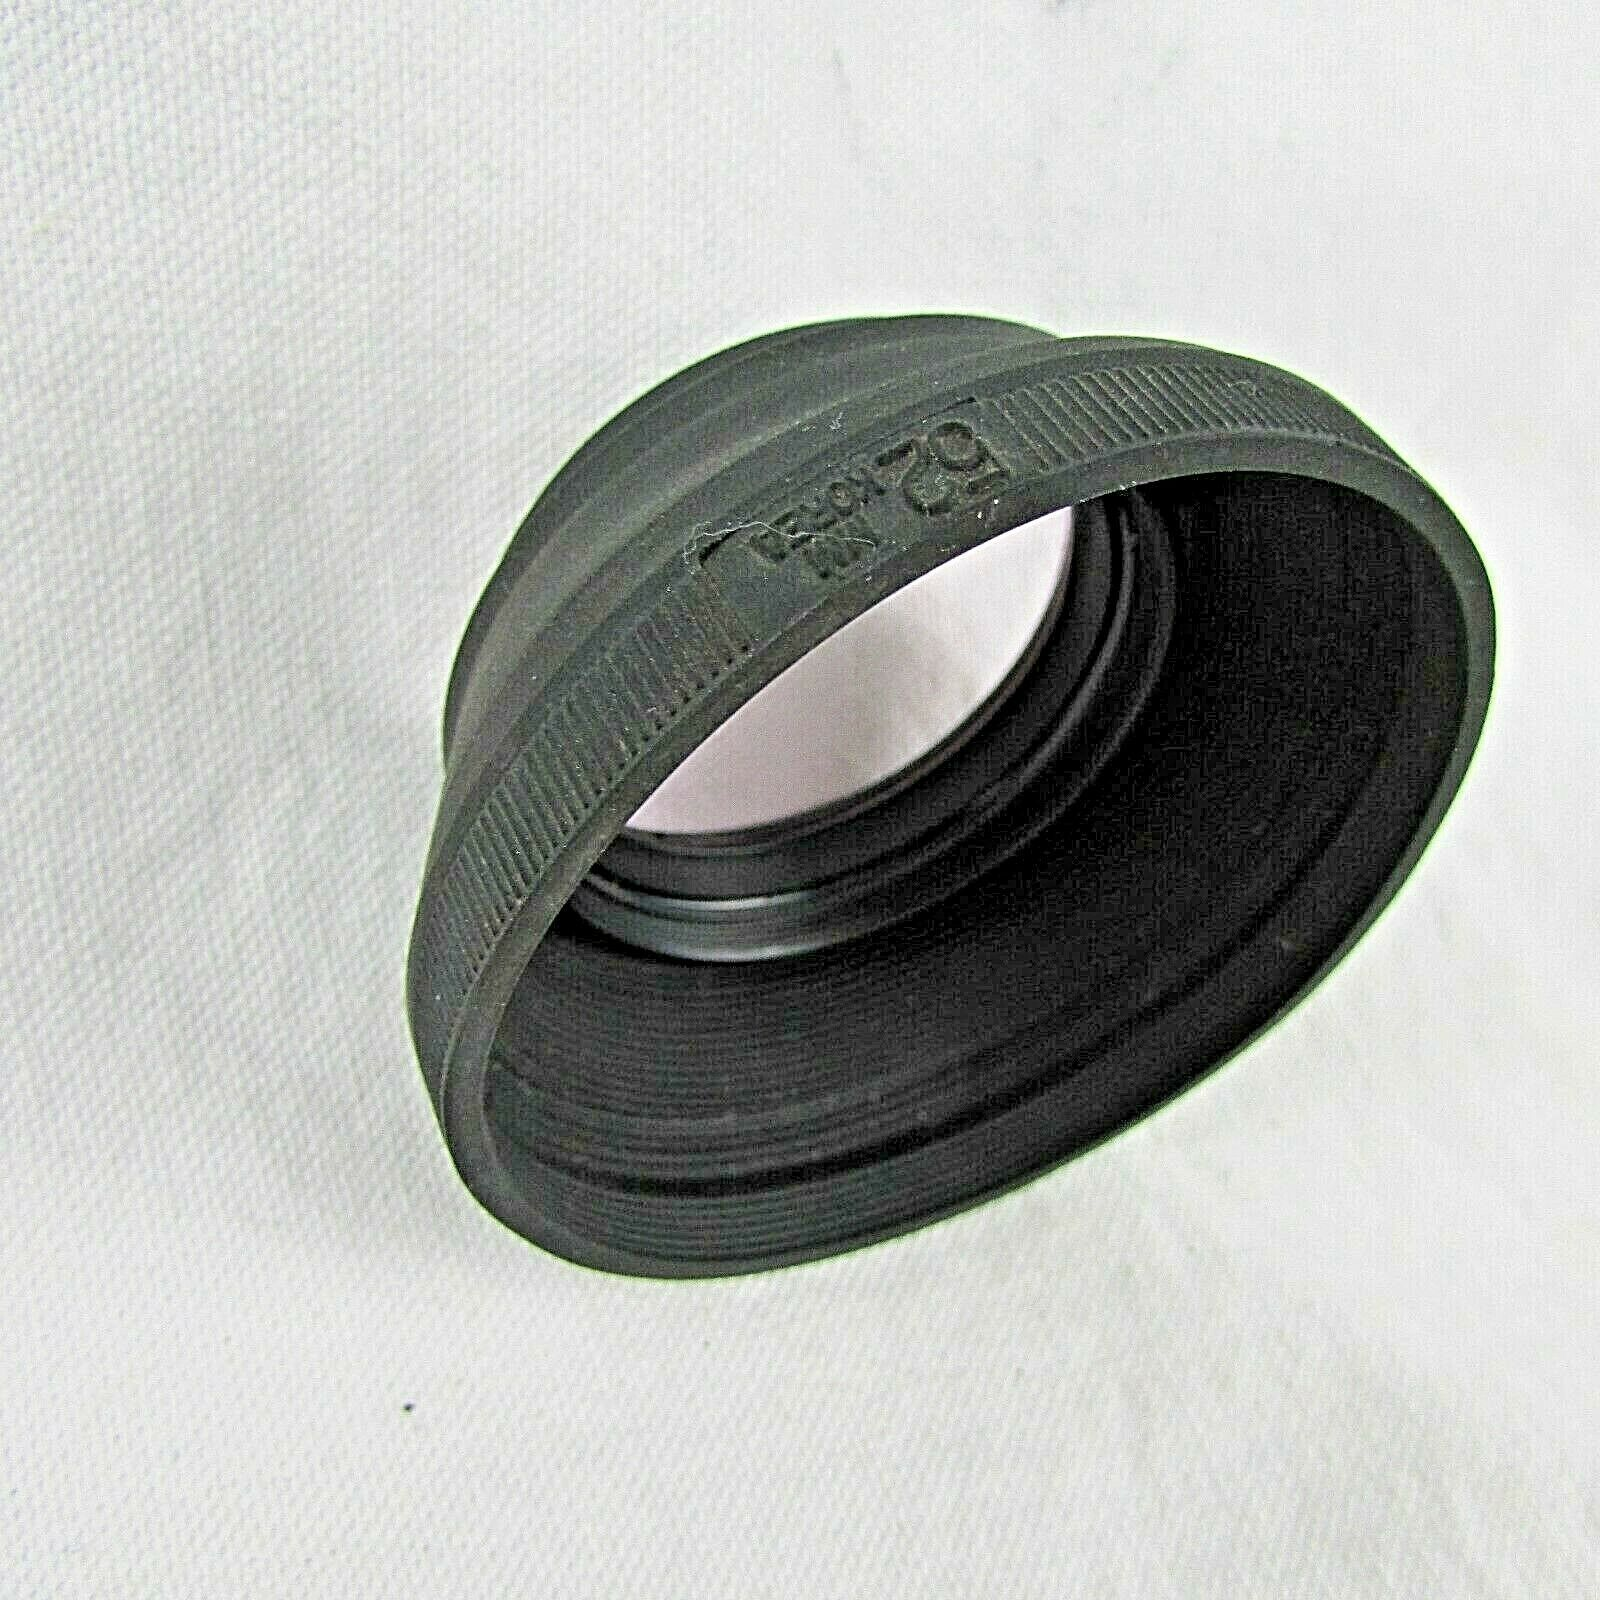 Primary image for HOYA 52MM RUBBER LENS HOOD W/ 1B SKYLIGHT FILTER FREE Shipping